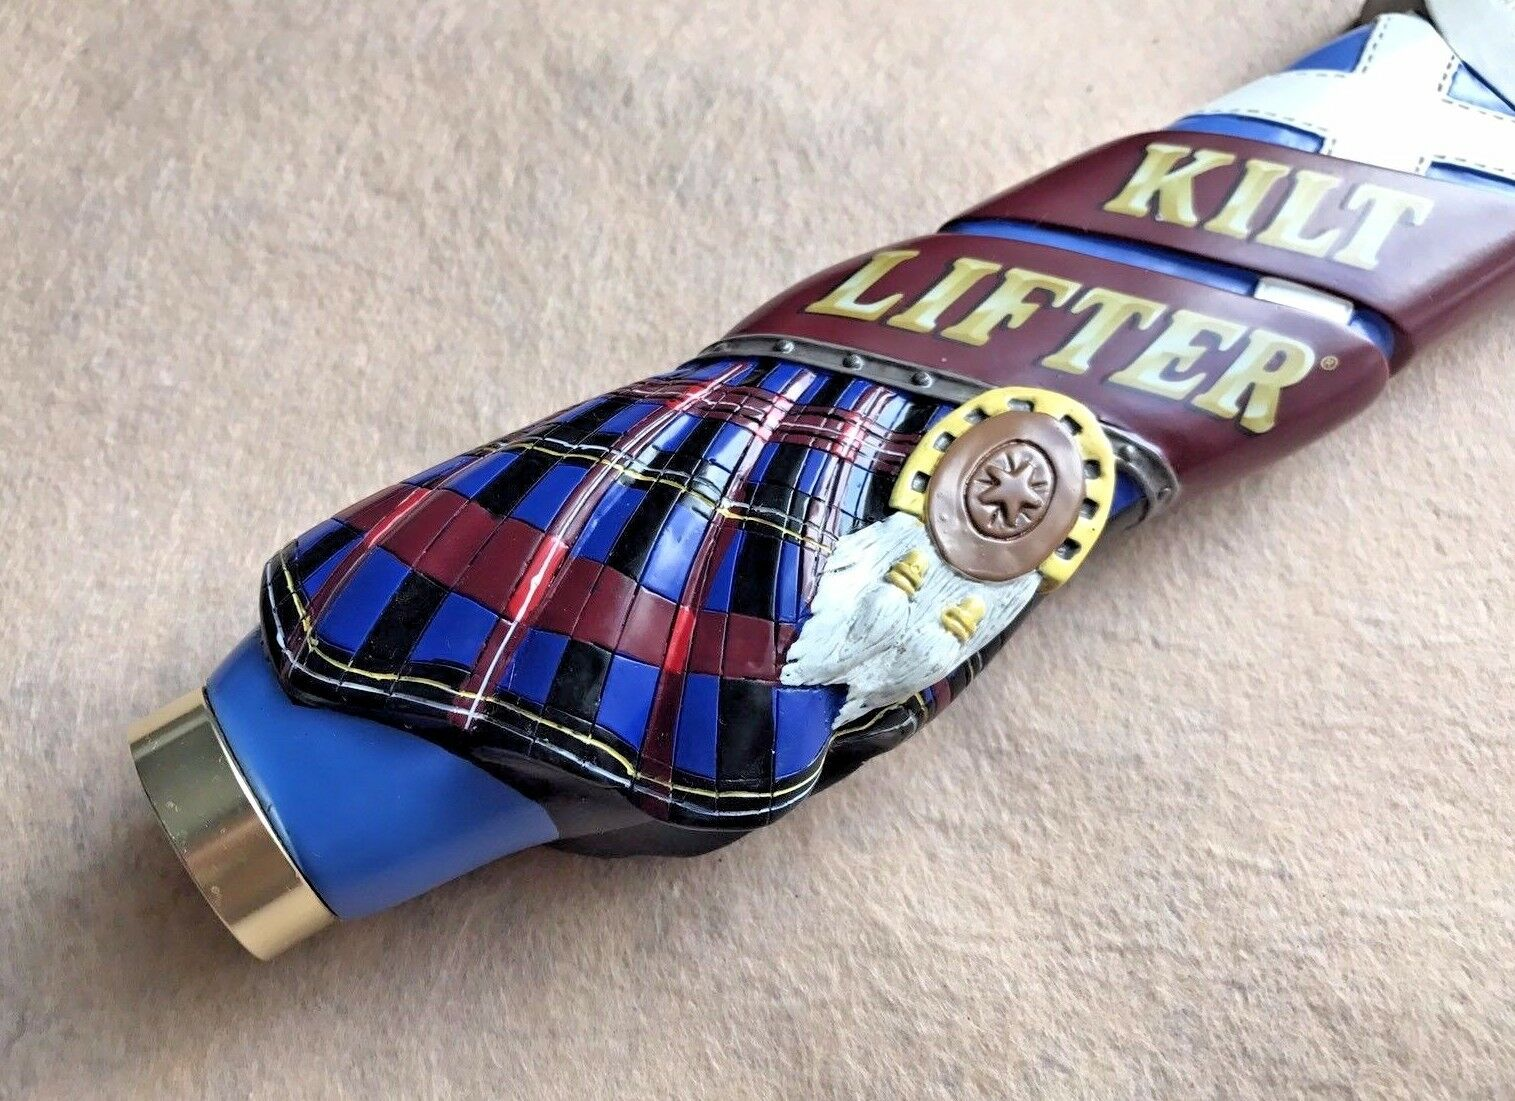 Four Peaks Kilt Lifter Scottish Beer Draught Tap Bar Handle Tap Handles NEW